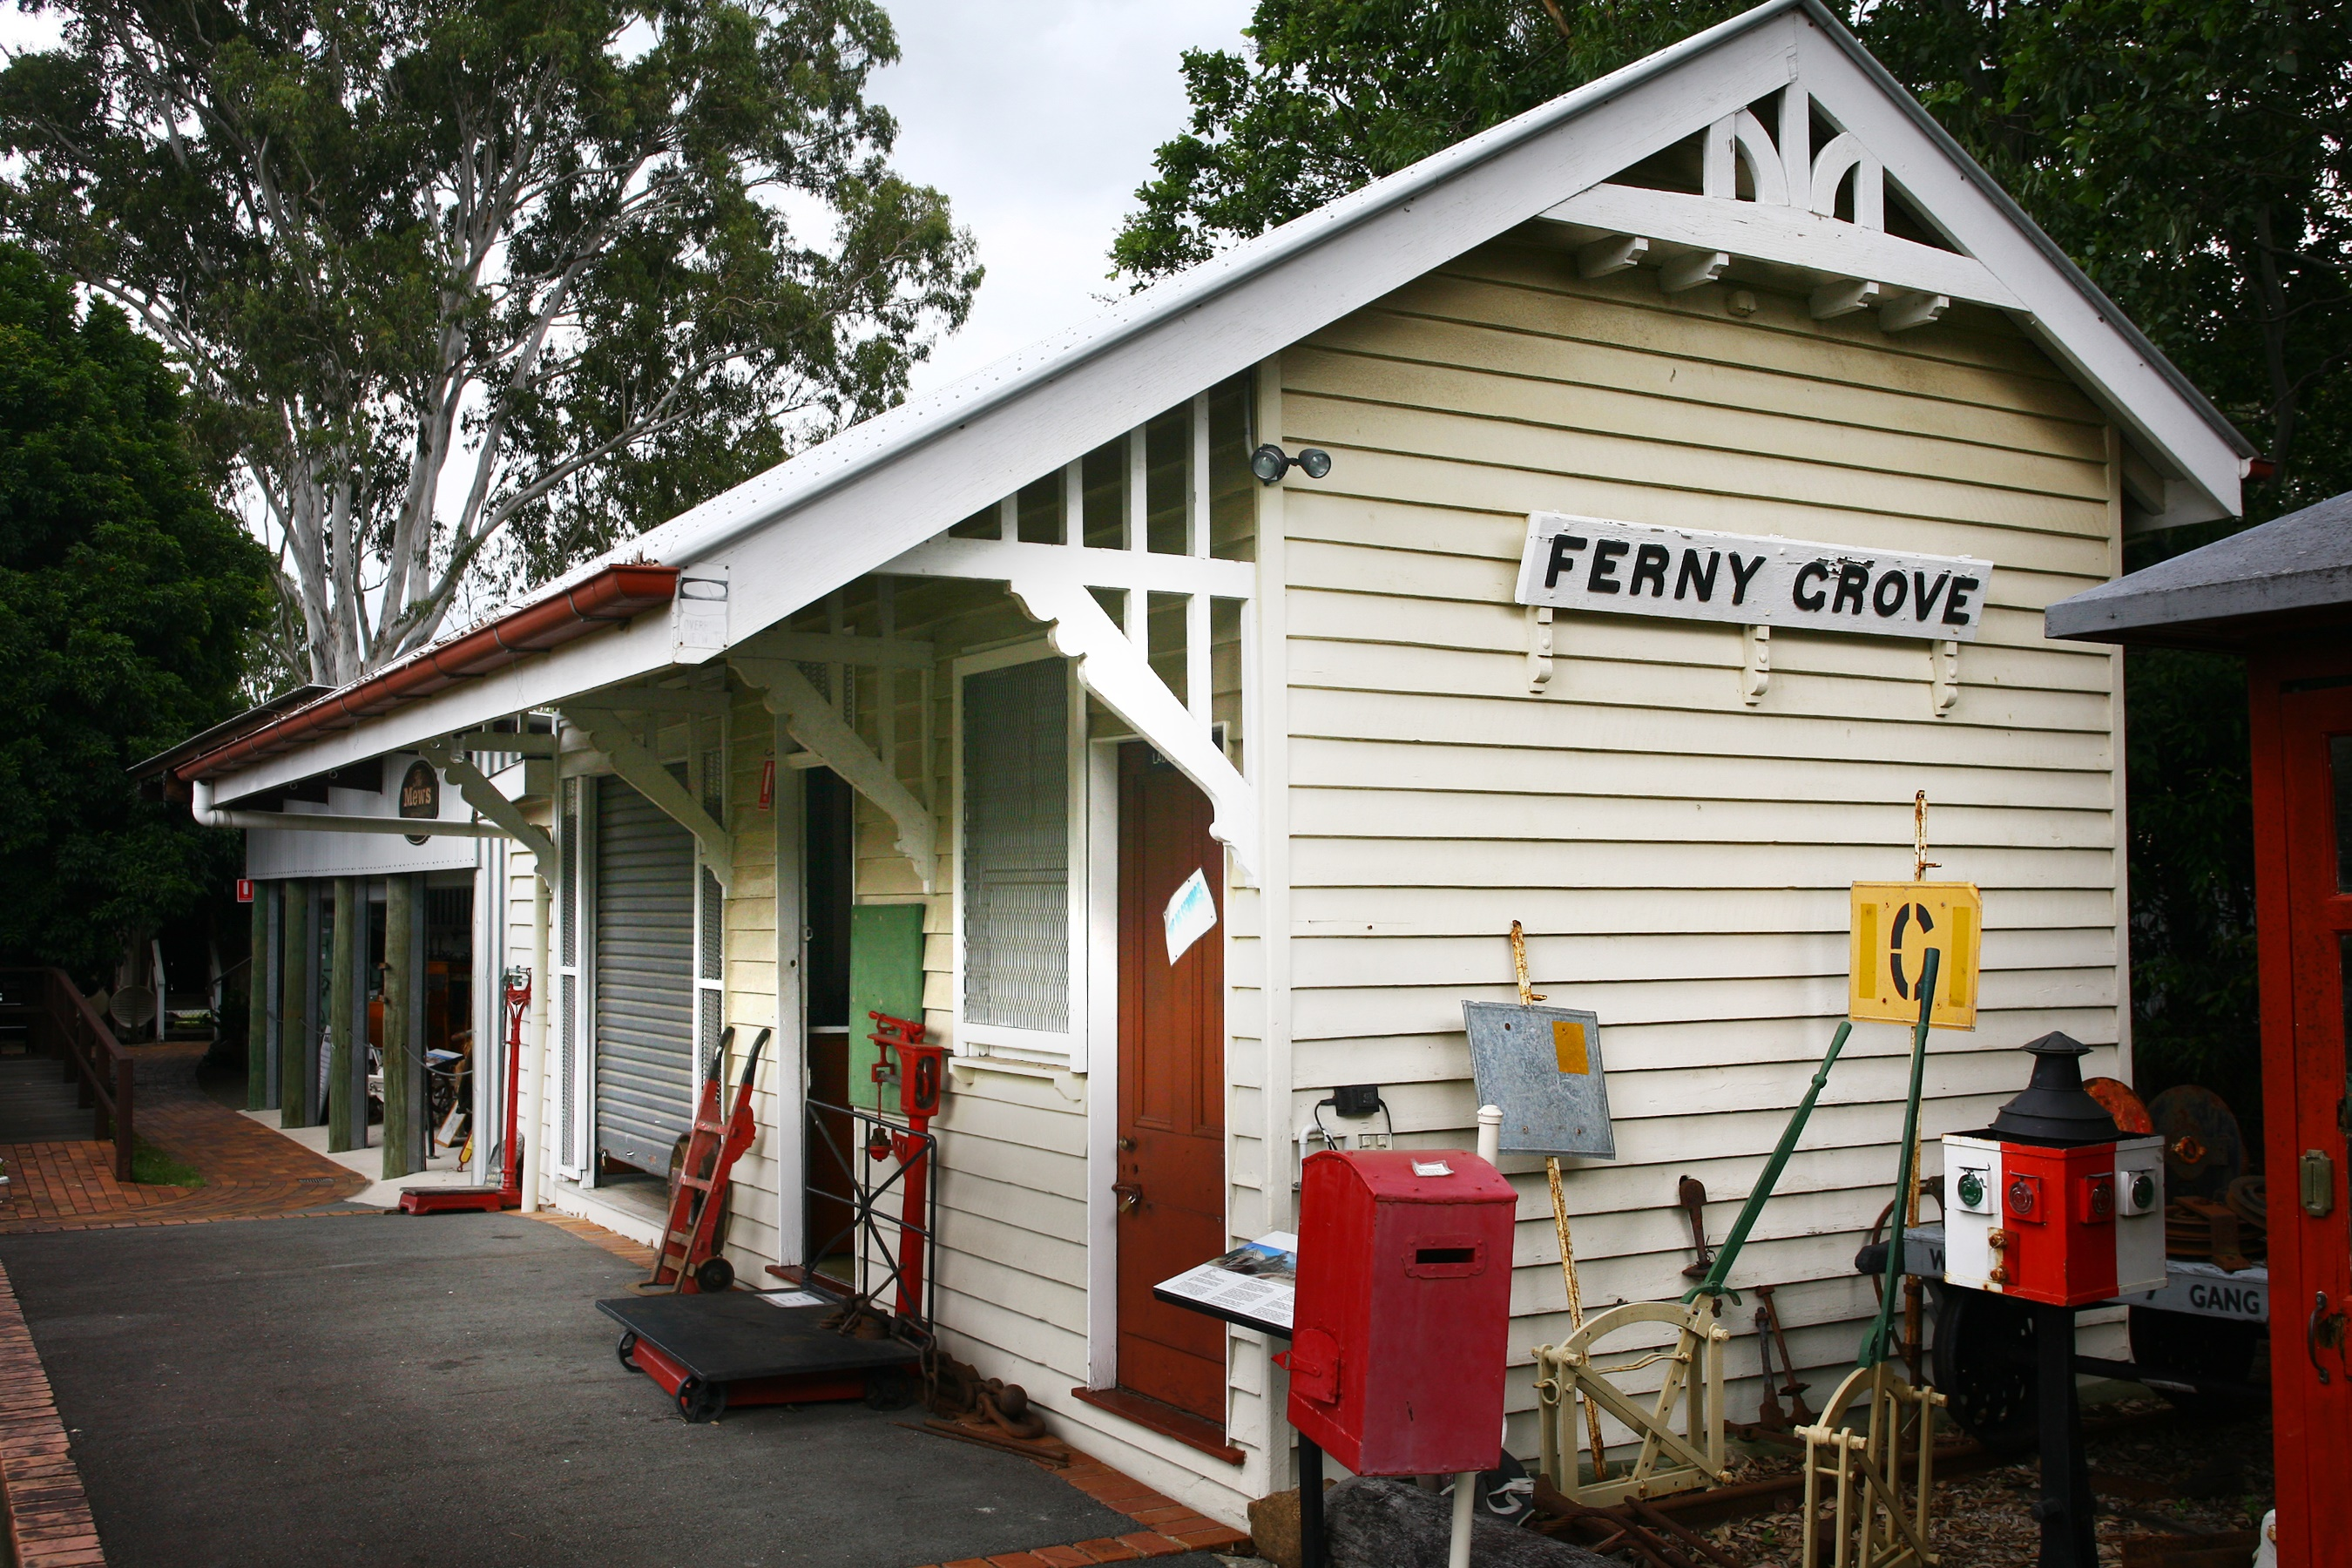 Ferny Grove Train Station